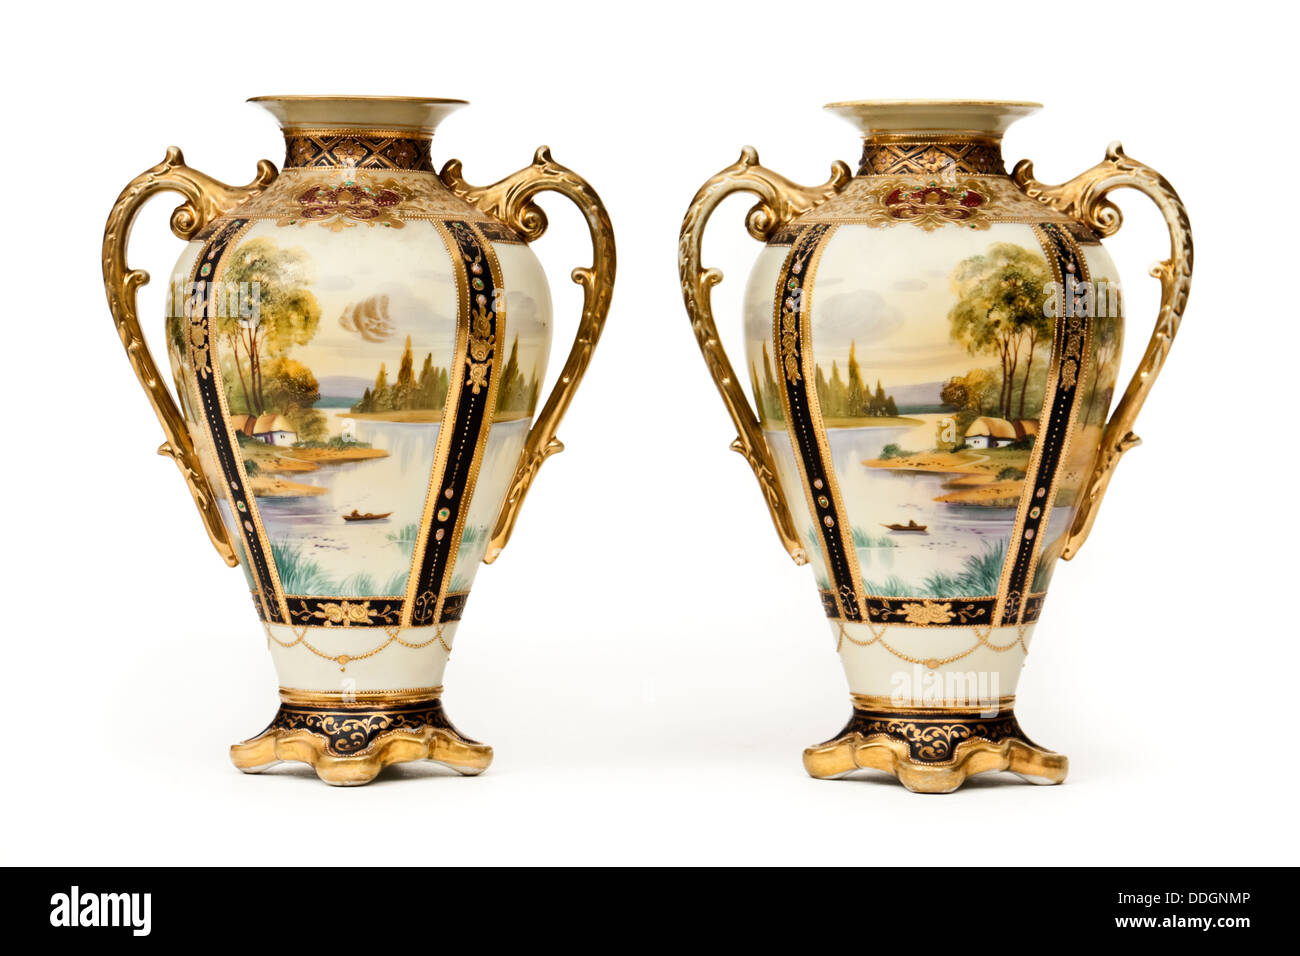 Pair of antique hand painted ornate vases by noritake of japan pair of antique hand painted ornate vases by noritake of japan reviewsmspy